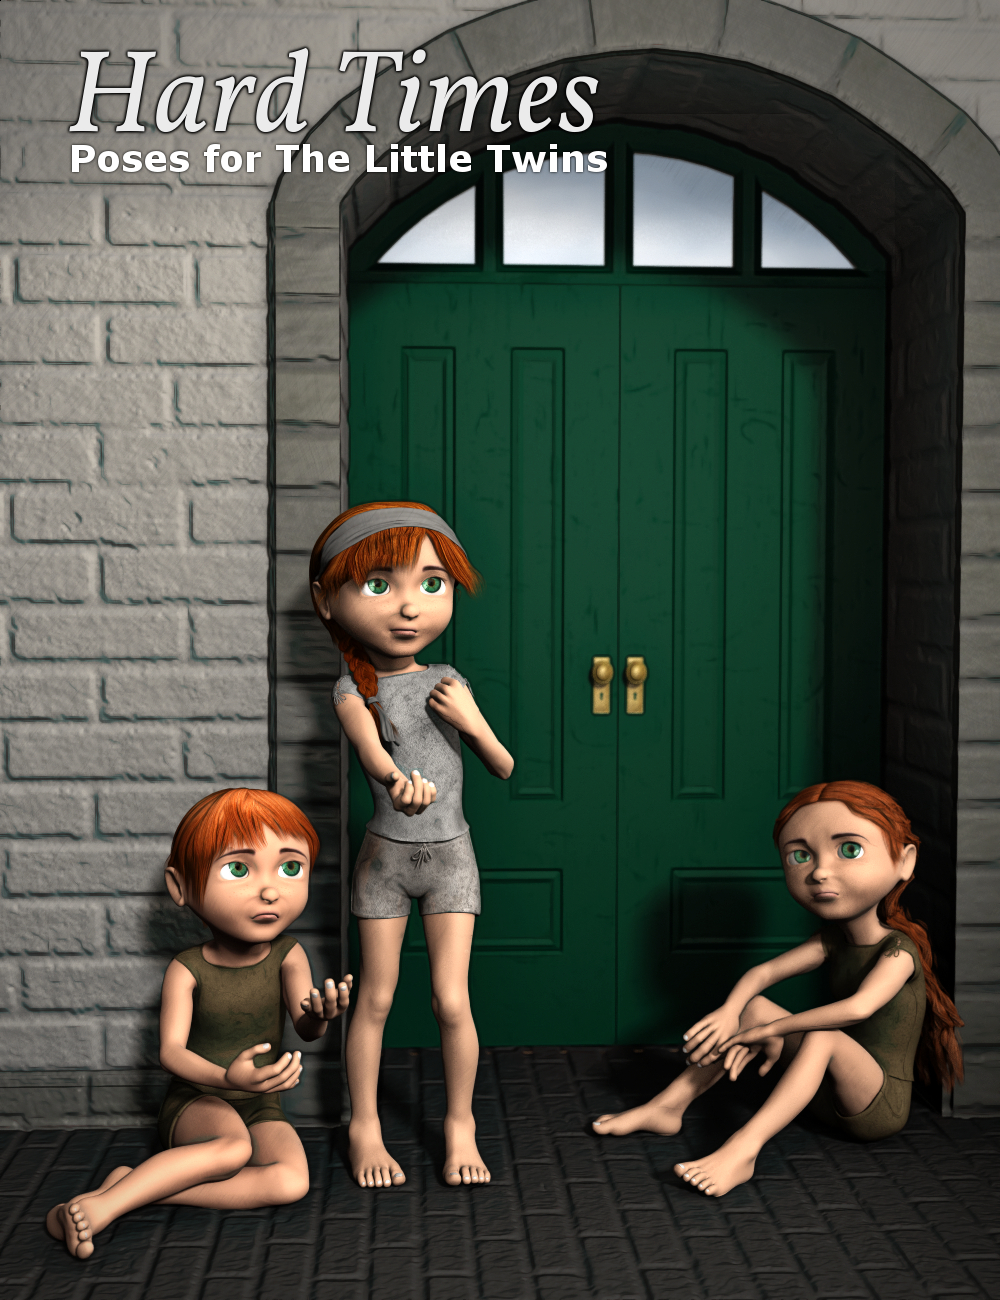 Hard Times - Poses for The Little Twins by: Inkara, 3D Models by Daz 3D